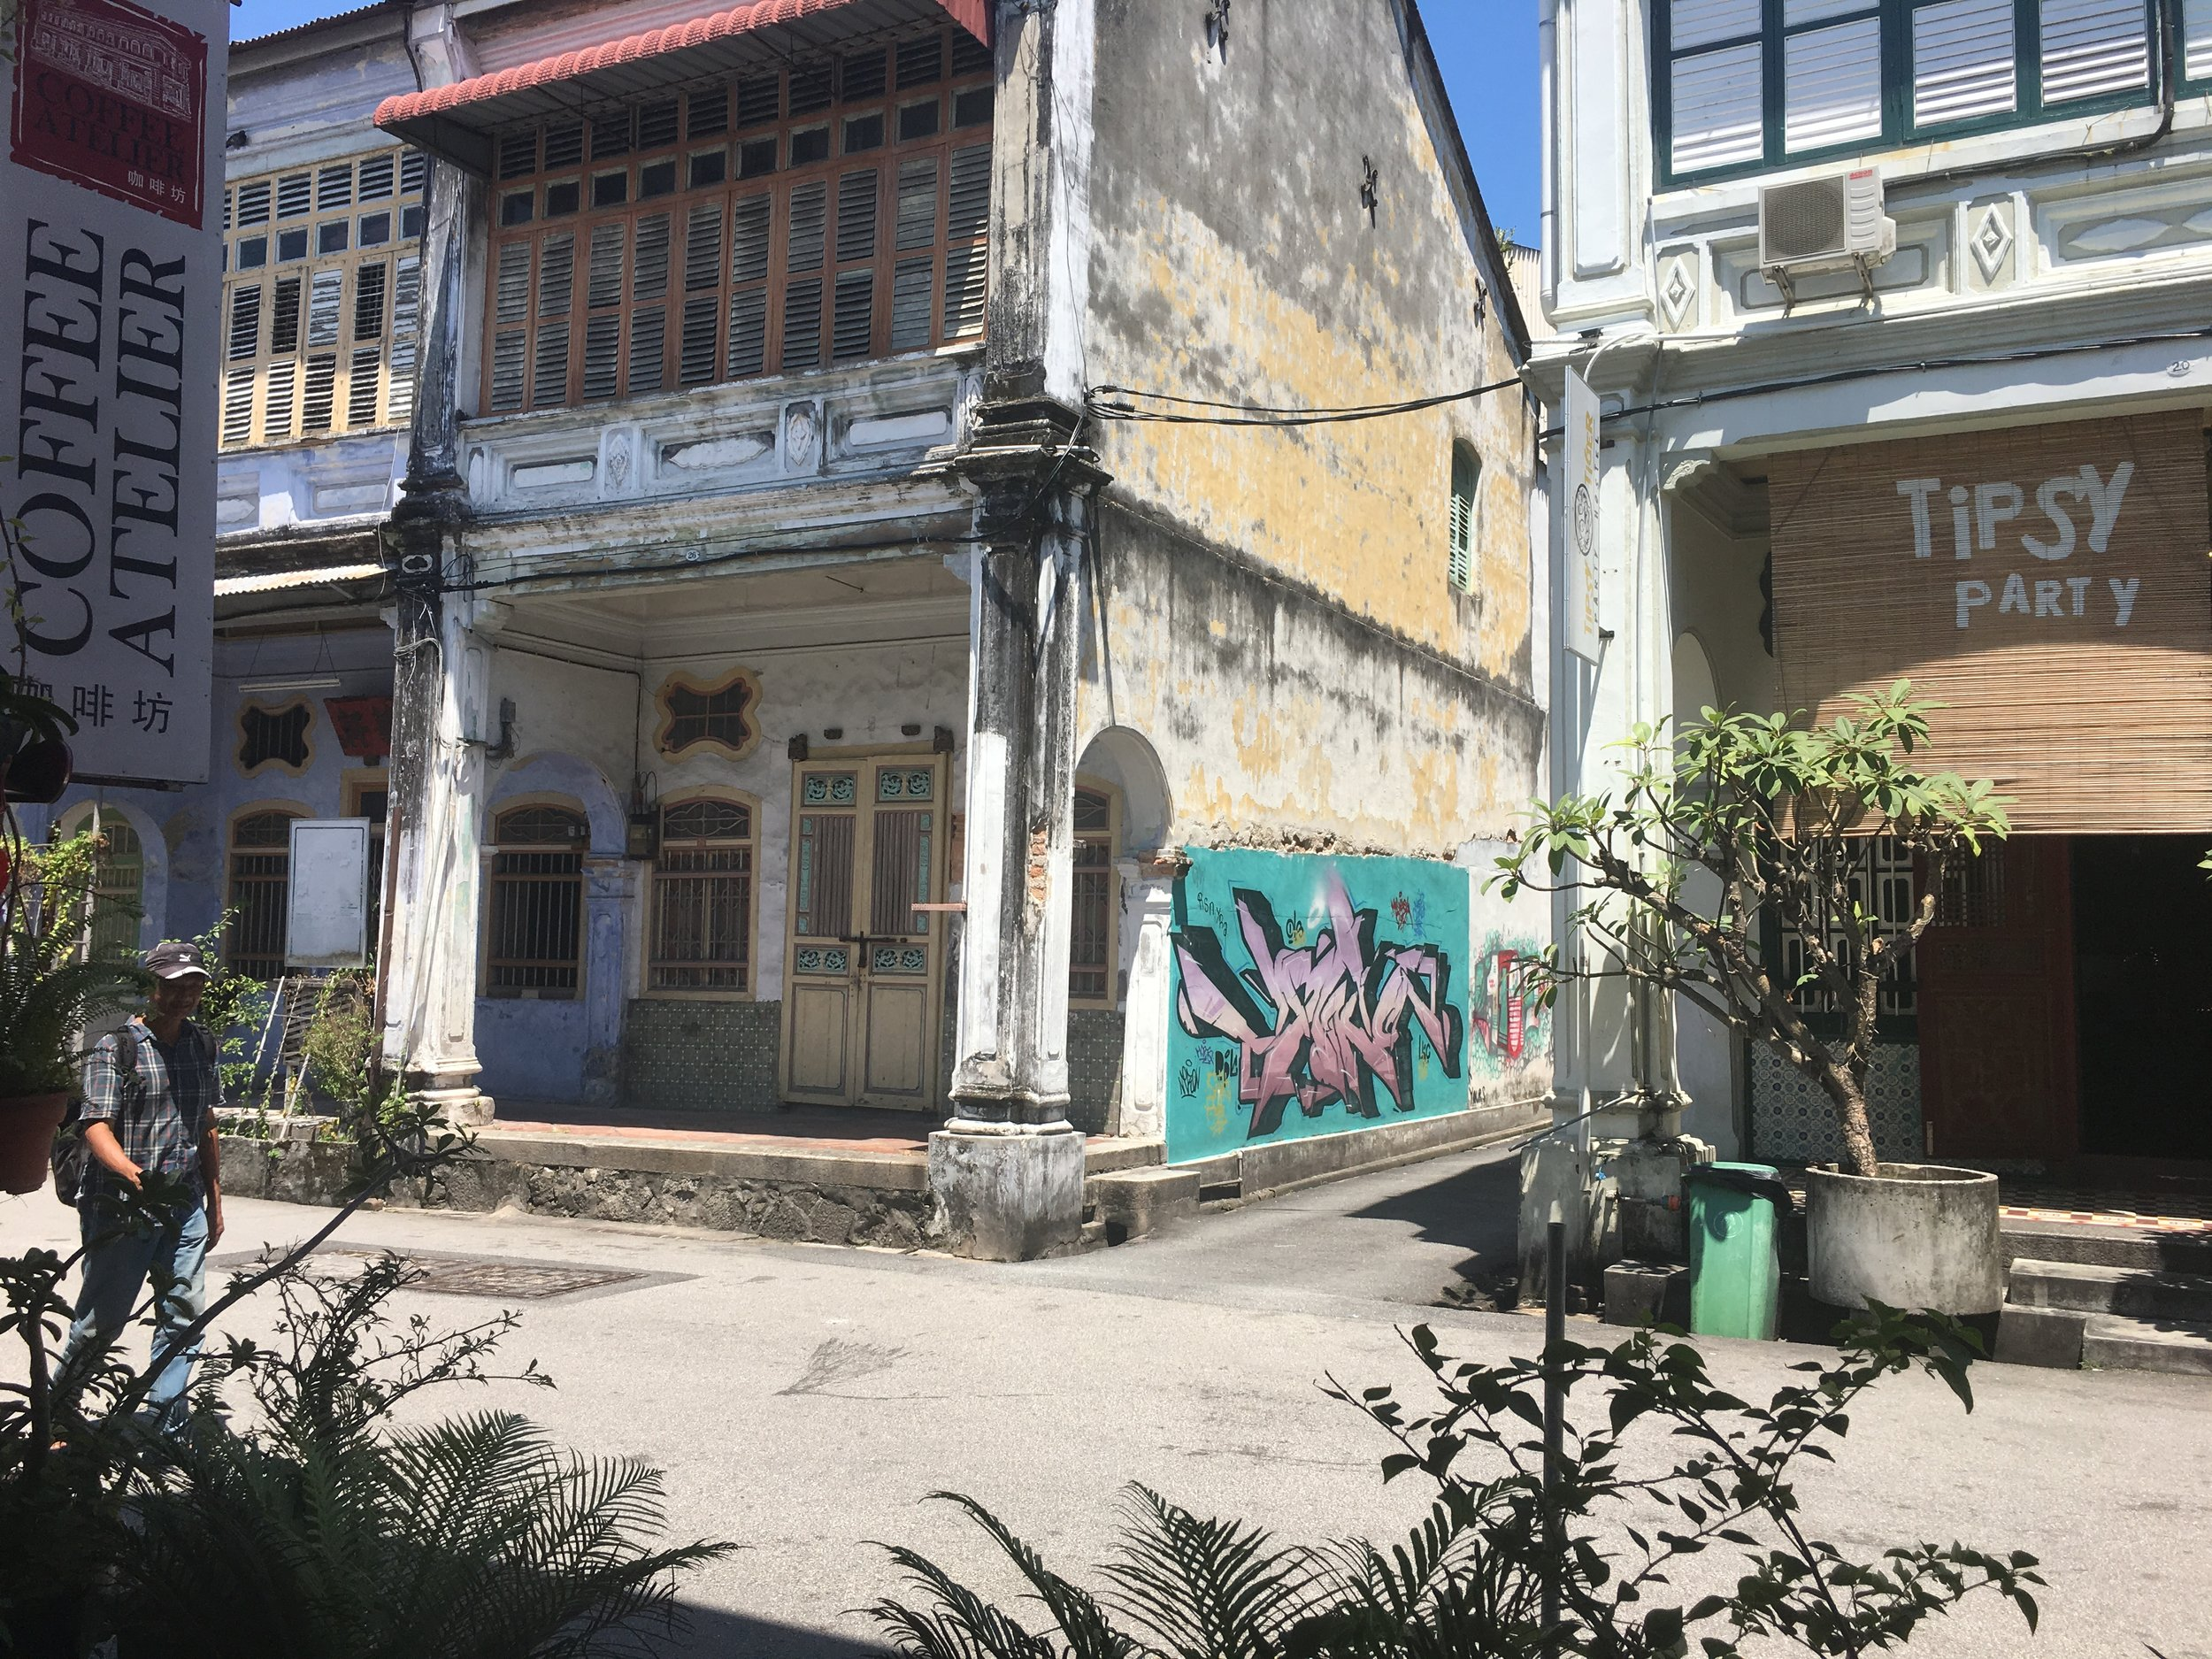 The Colonial buildings throughout Malaysia are beautiful, especially in George Town where the street art is wonderfully juxtaposed against these beautiful buildings.